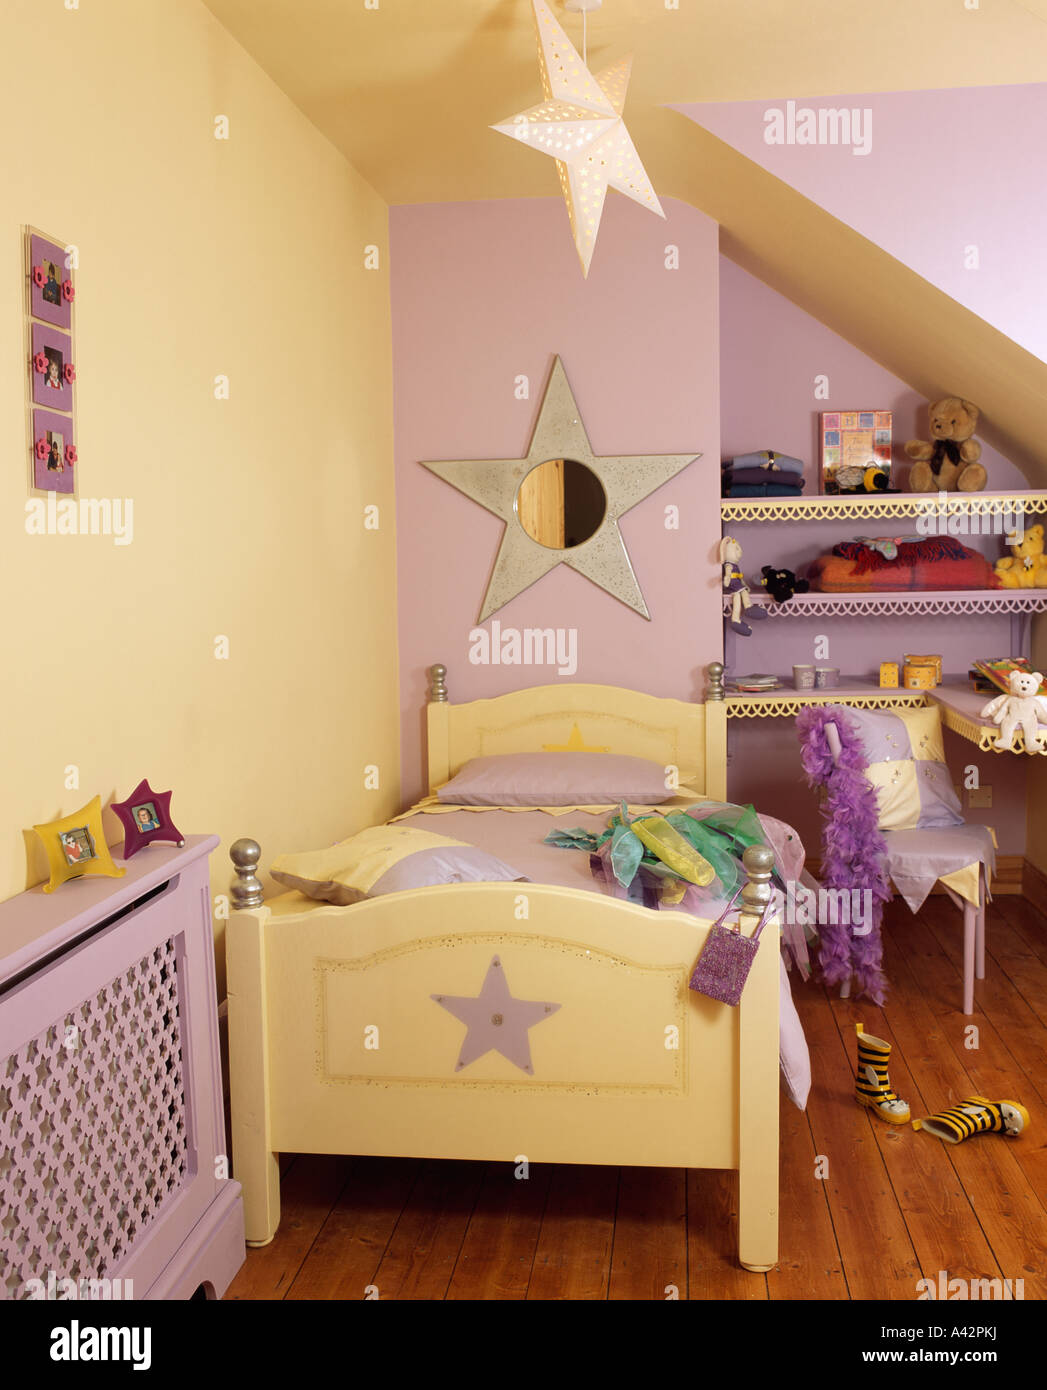 child s bedroom with pastel yellow and purple walls and pale